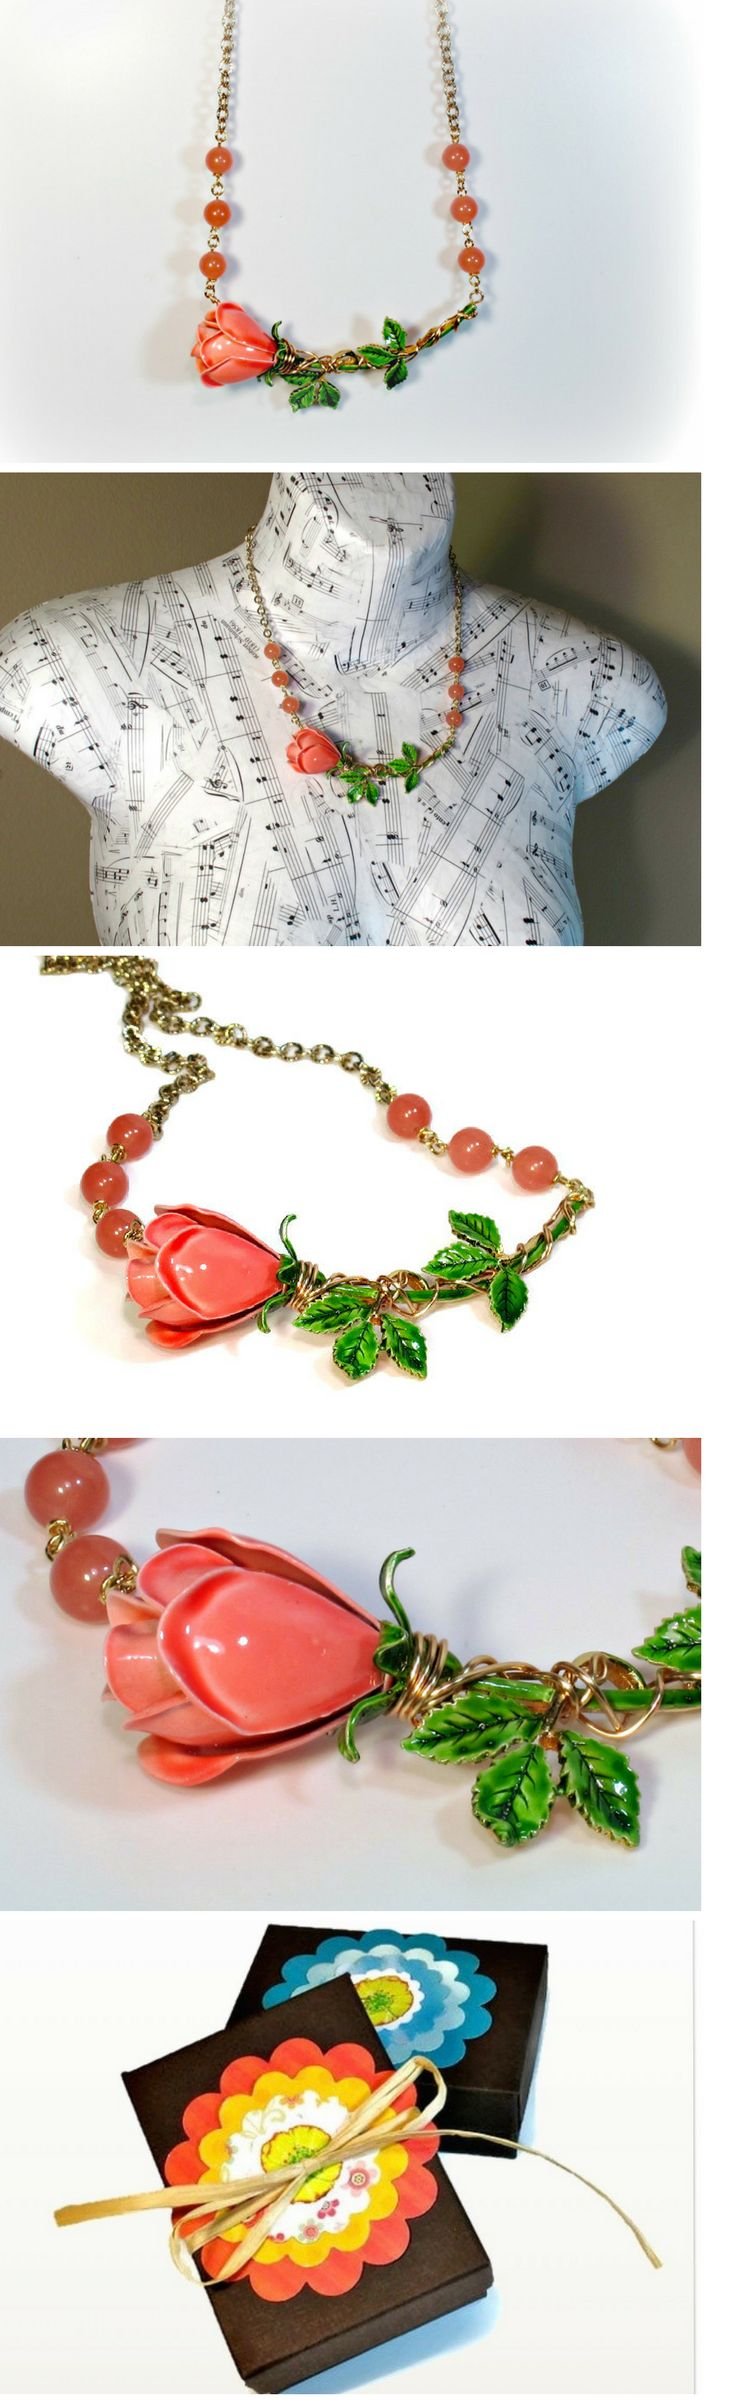 Repurposed vintage flower necklace featuring a vintage pink coral flower, CLICK to see one-of-a-kind statement necklace-> https://www.etsy.com/listing/245472674/upcycled-recycled-repurposed-flower